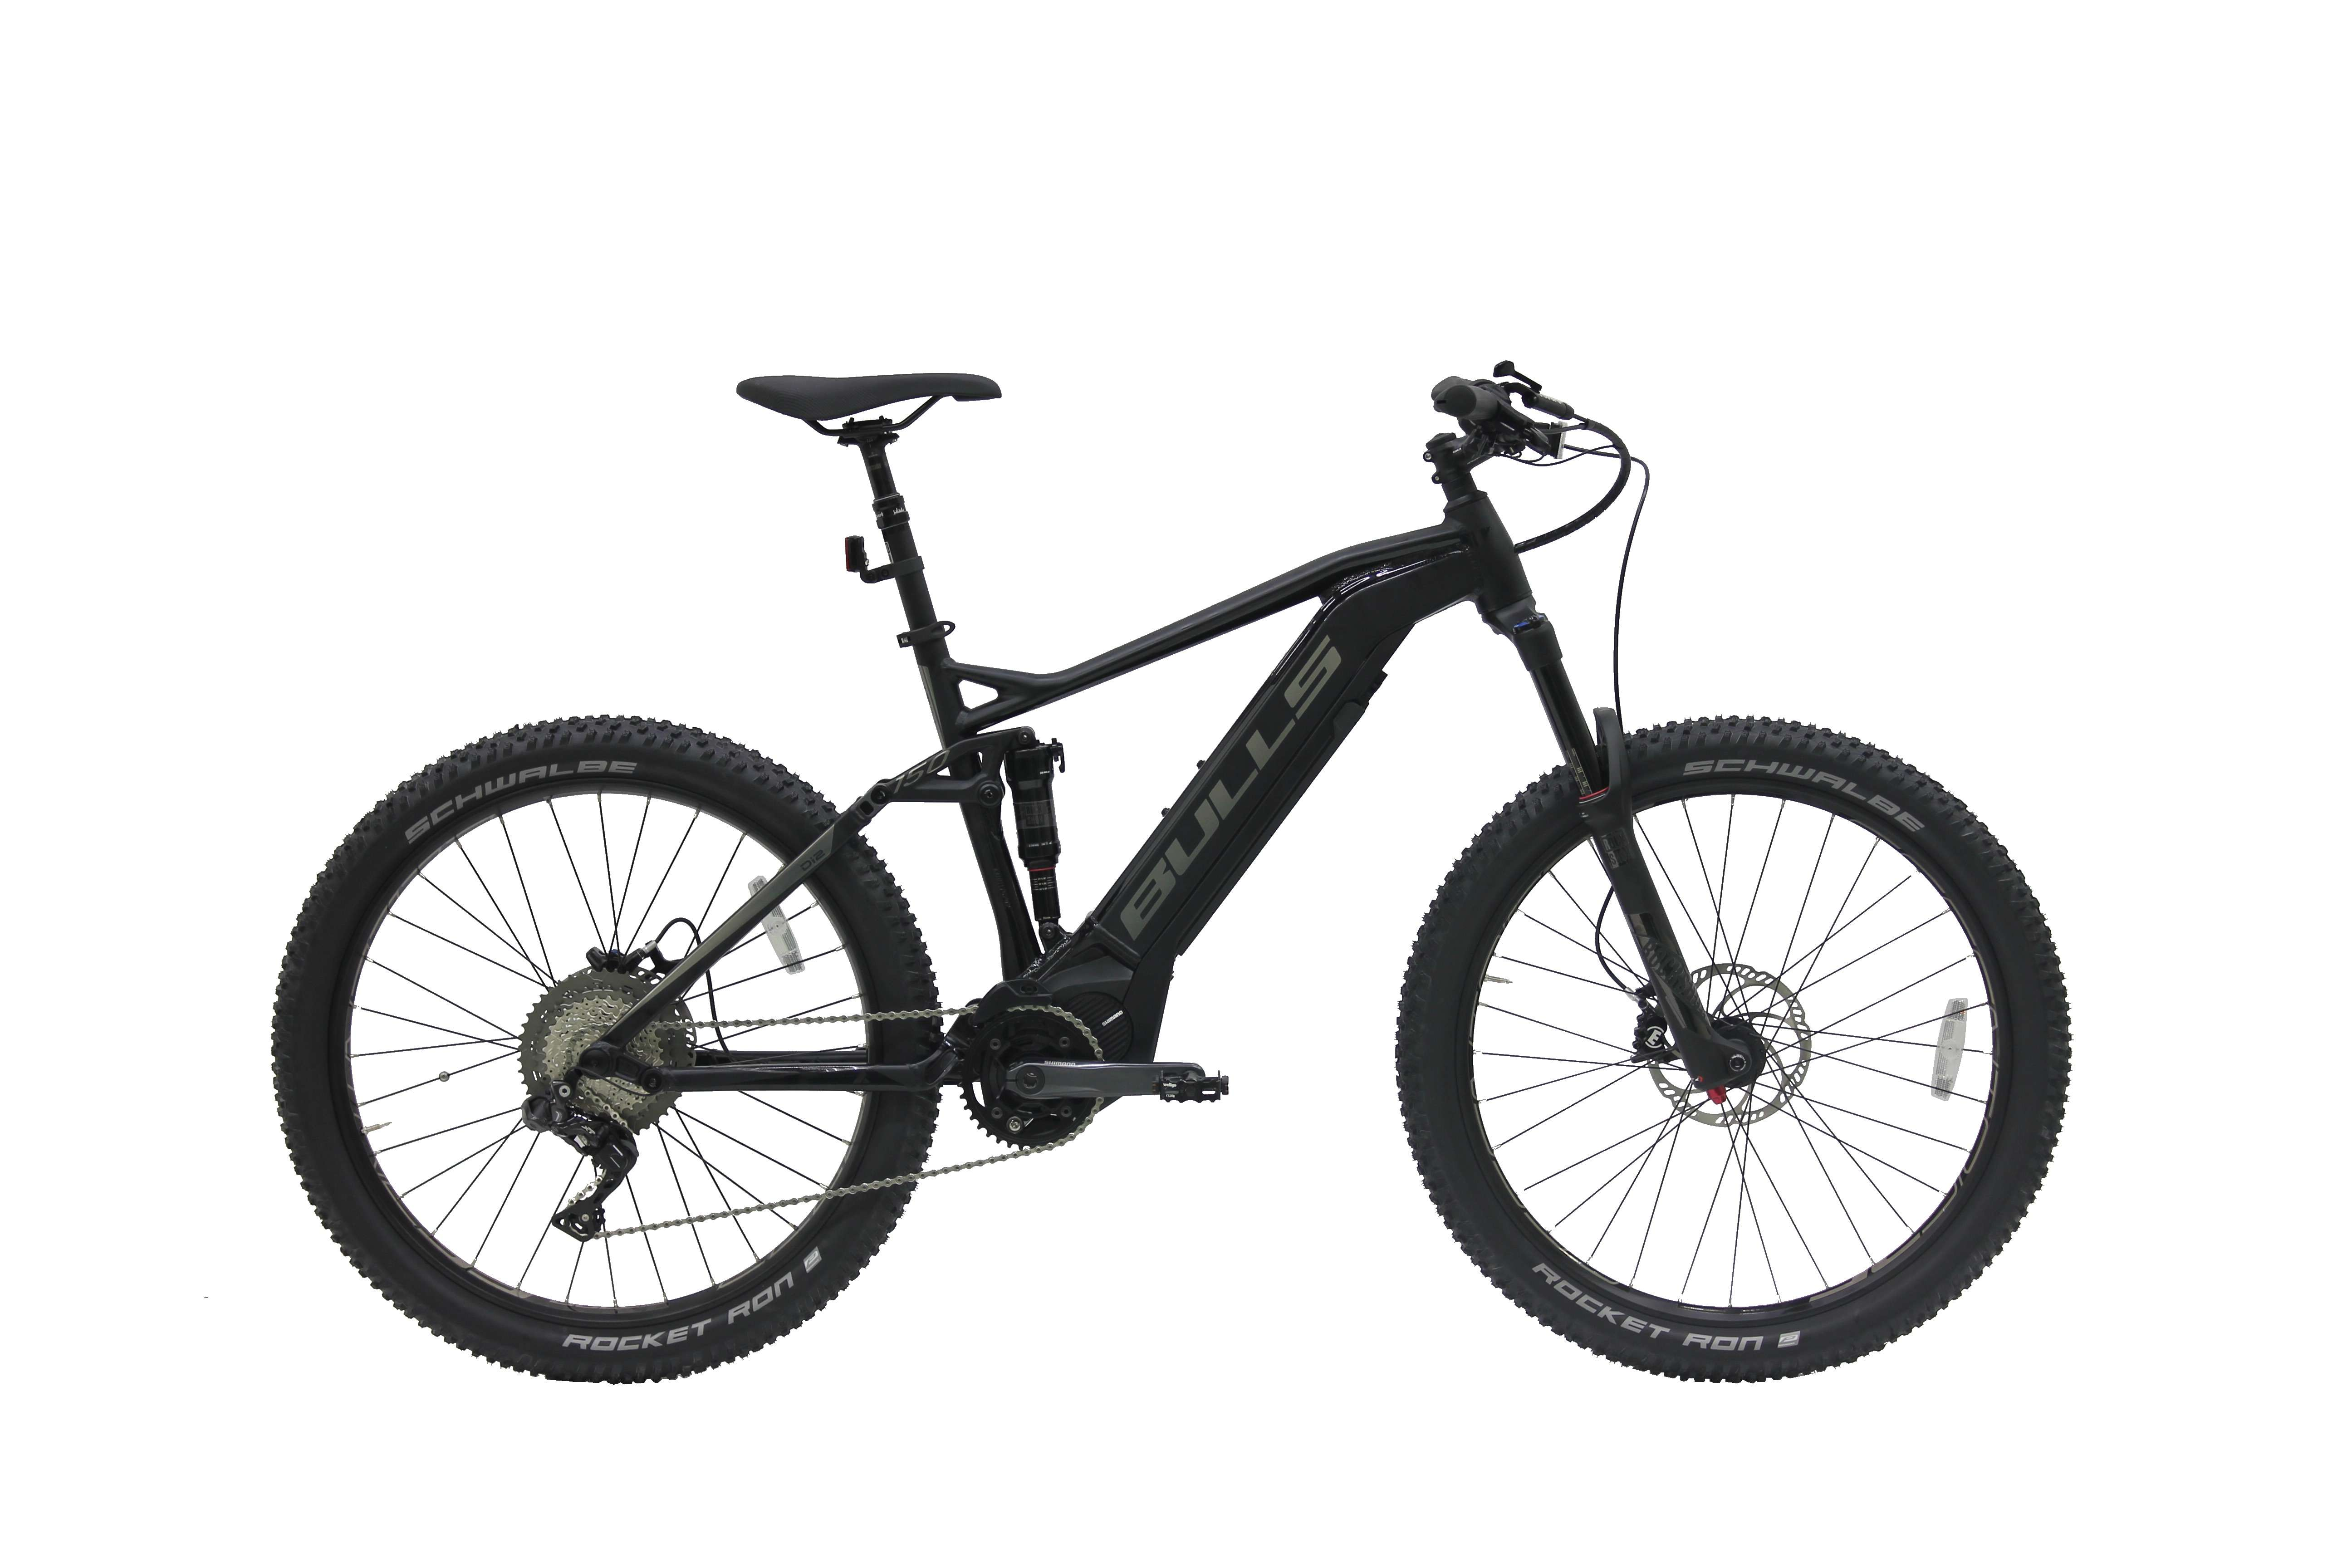 Electric bikes online, Bulls E-Bikes, Bulls bikes, Bulls electric bikes, Bulls bicycles, Bulls